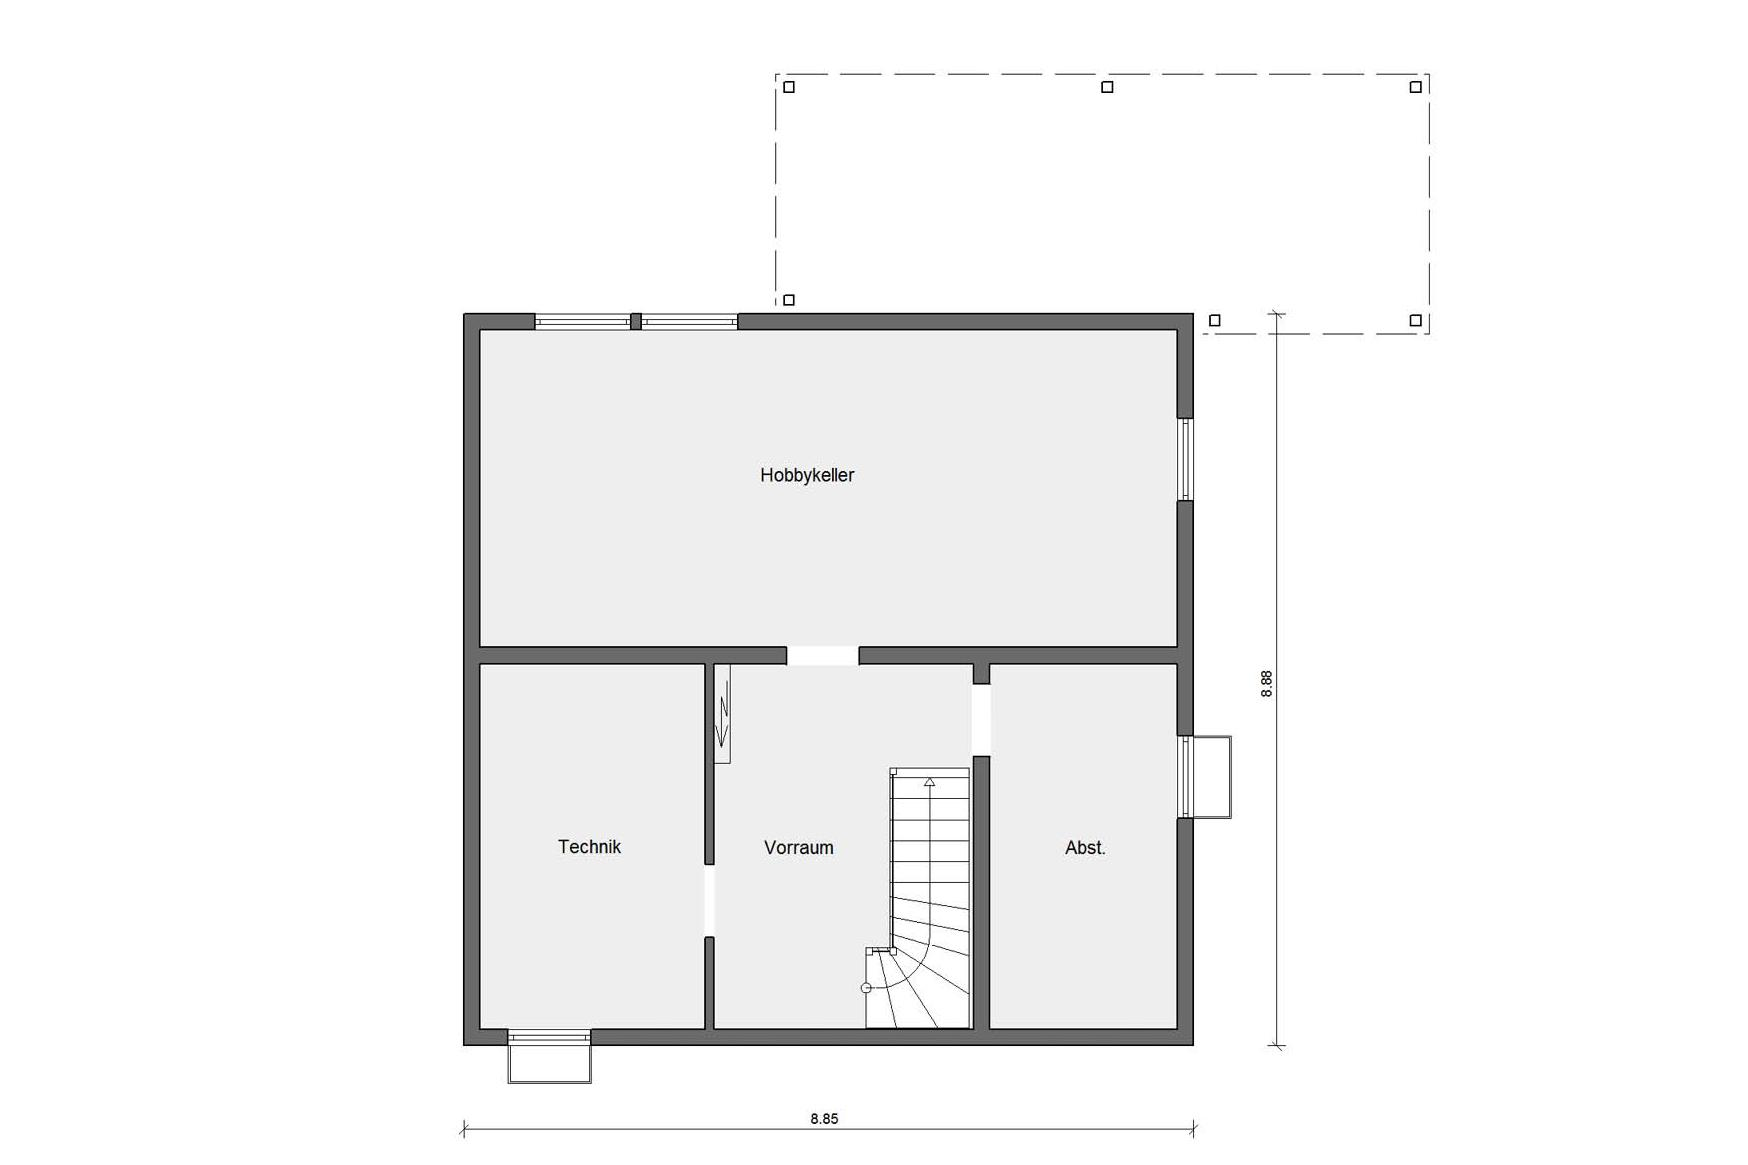 Floor plan basement D 15-134.1 Semi-detached house in the Swedish style